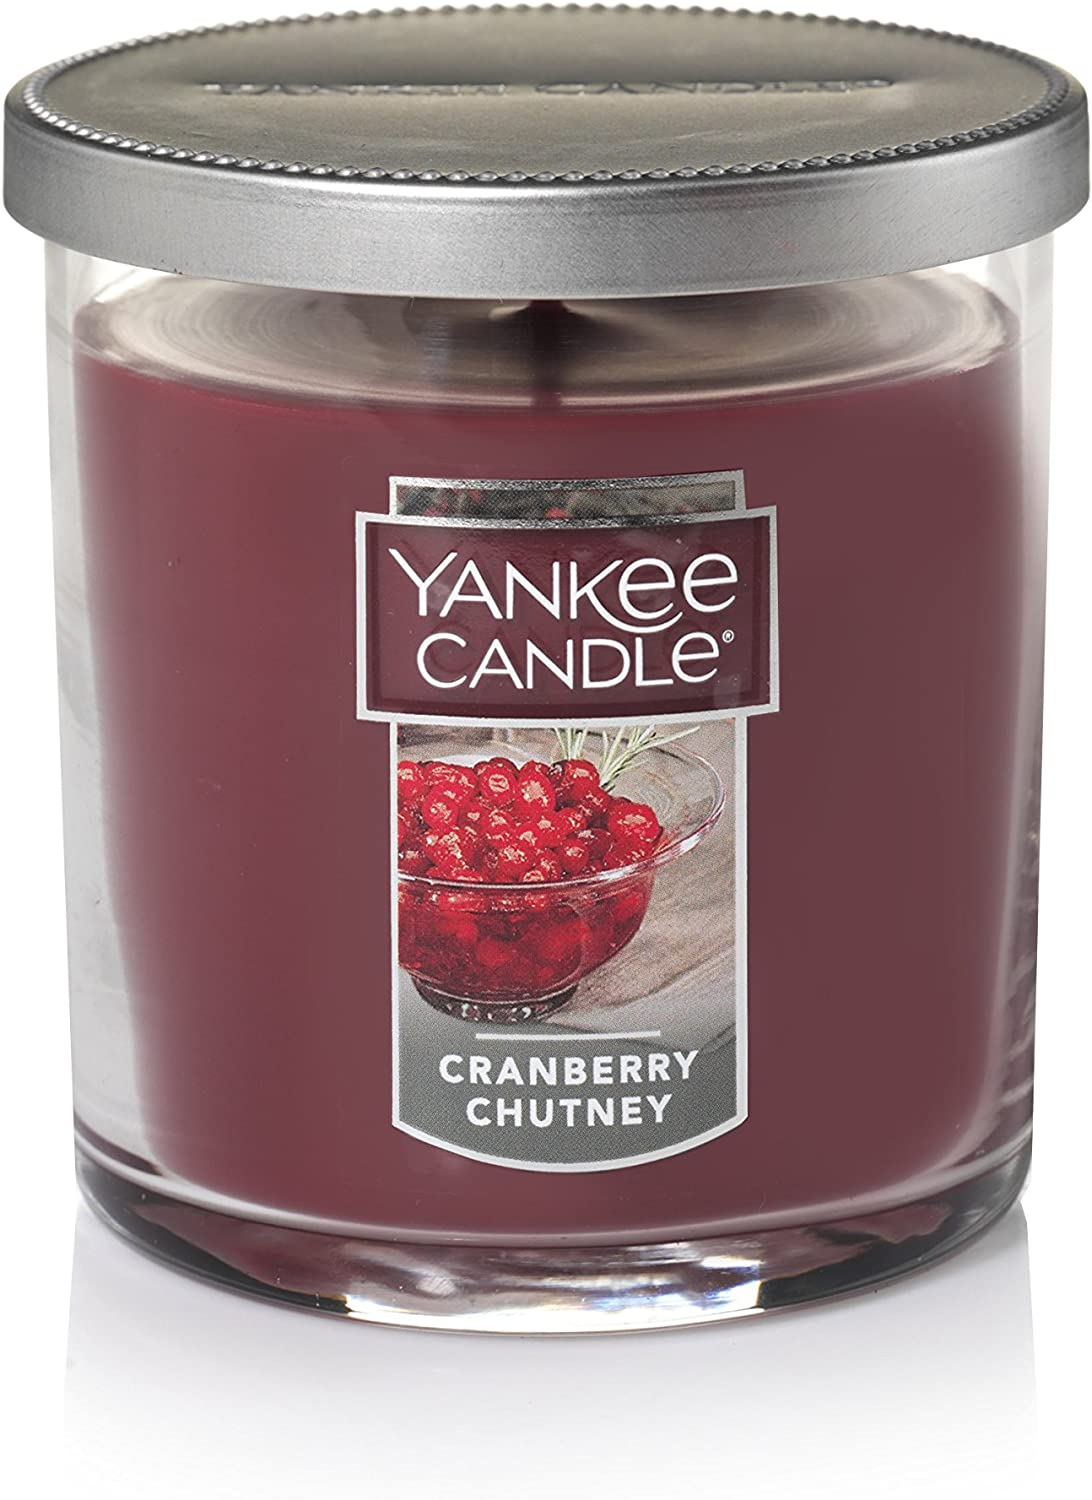 Yankee Candle Small Tumbler Candle, Cranberry Chutney